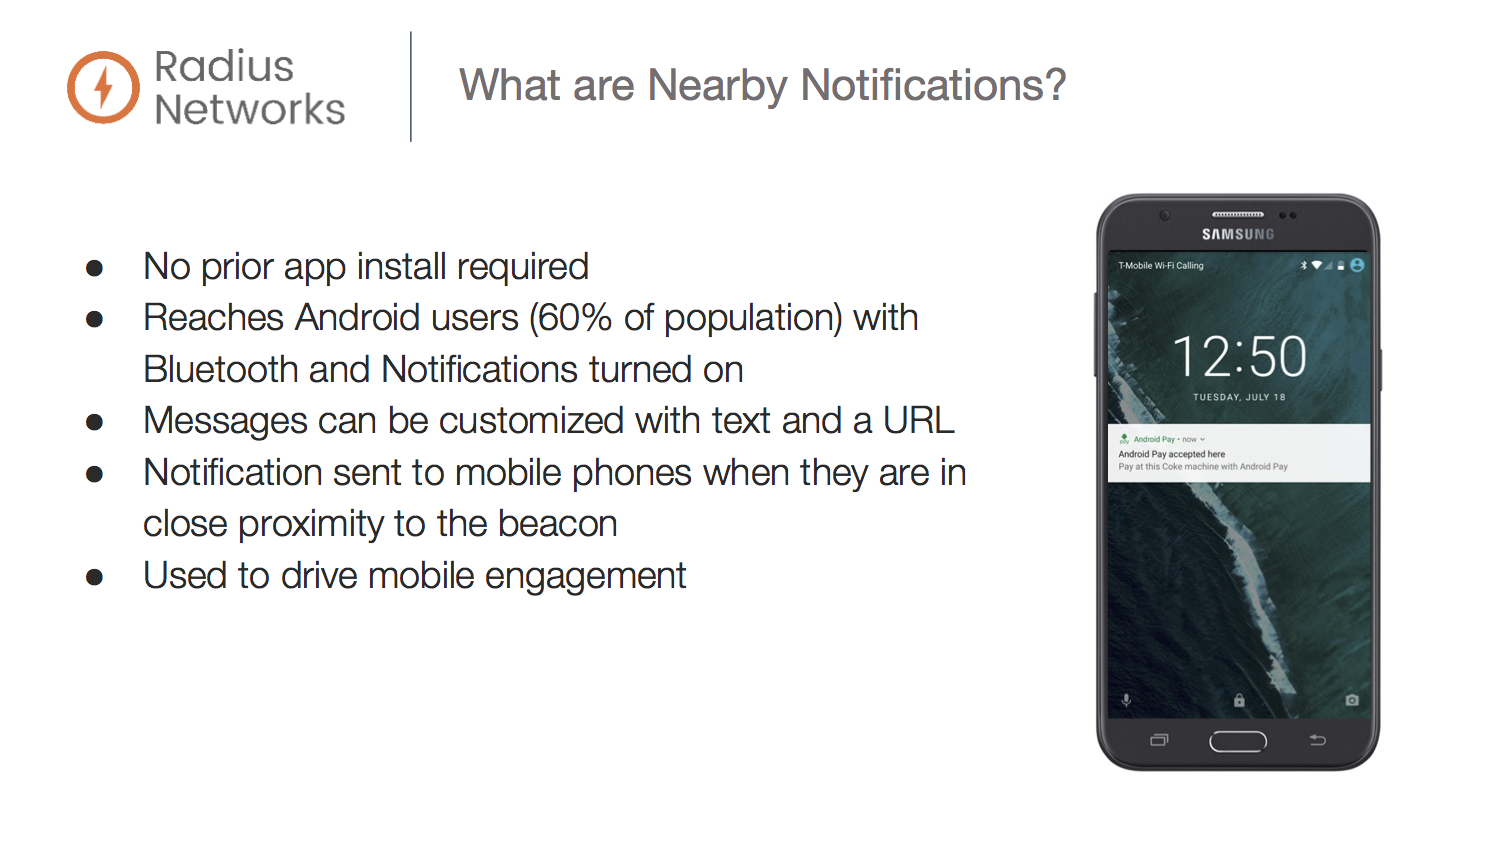 Nearby_Notifications3.png